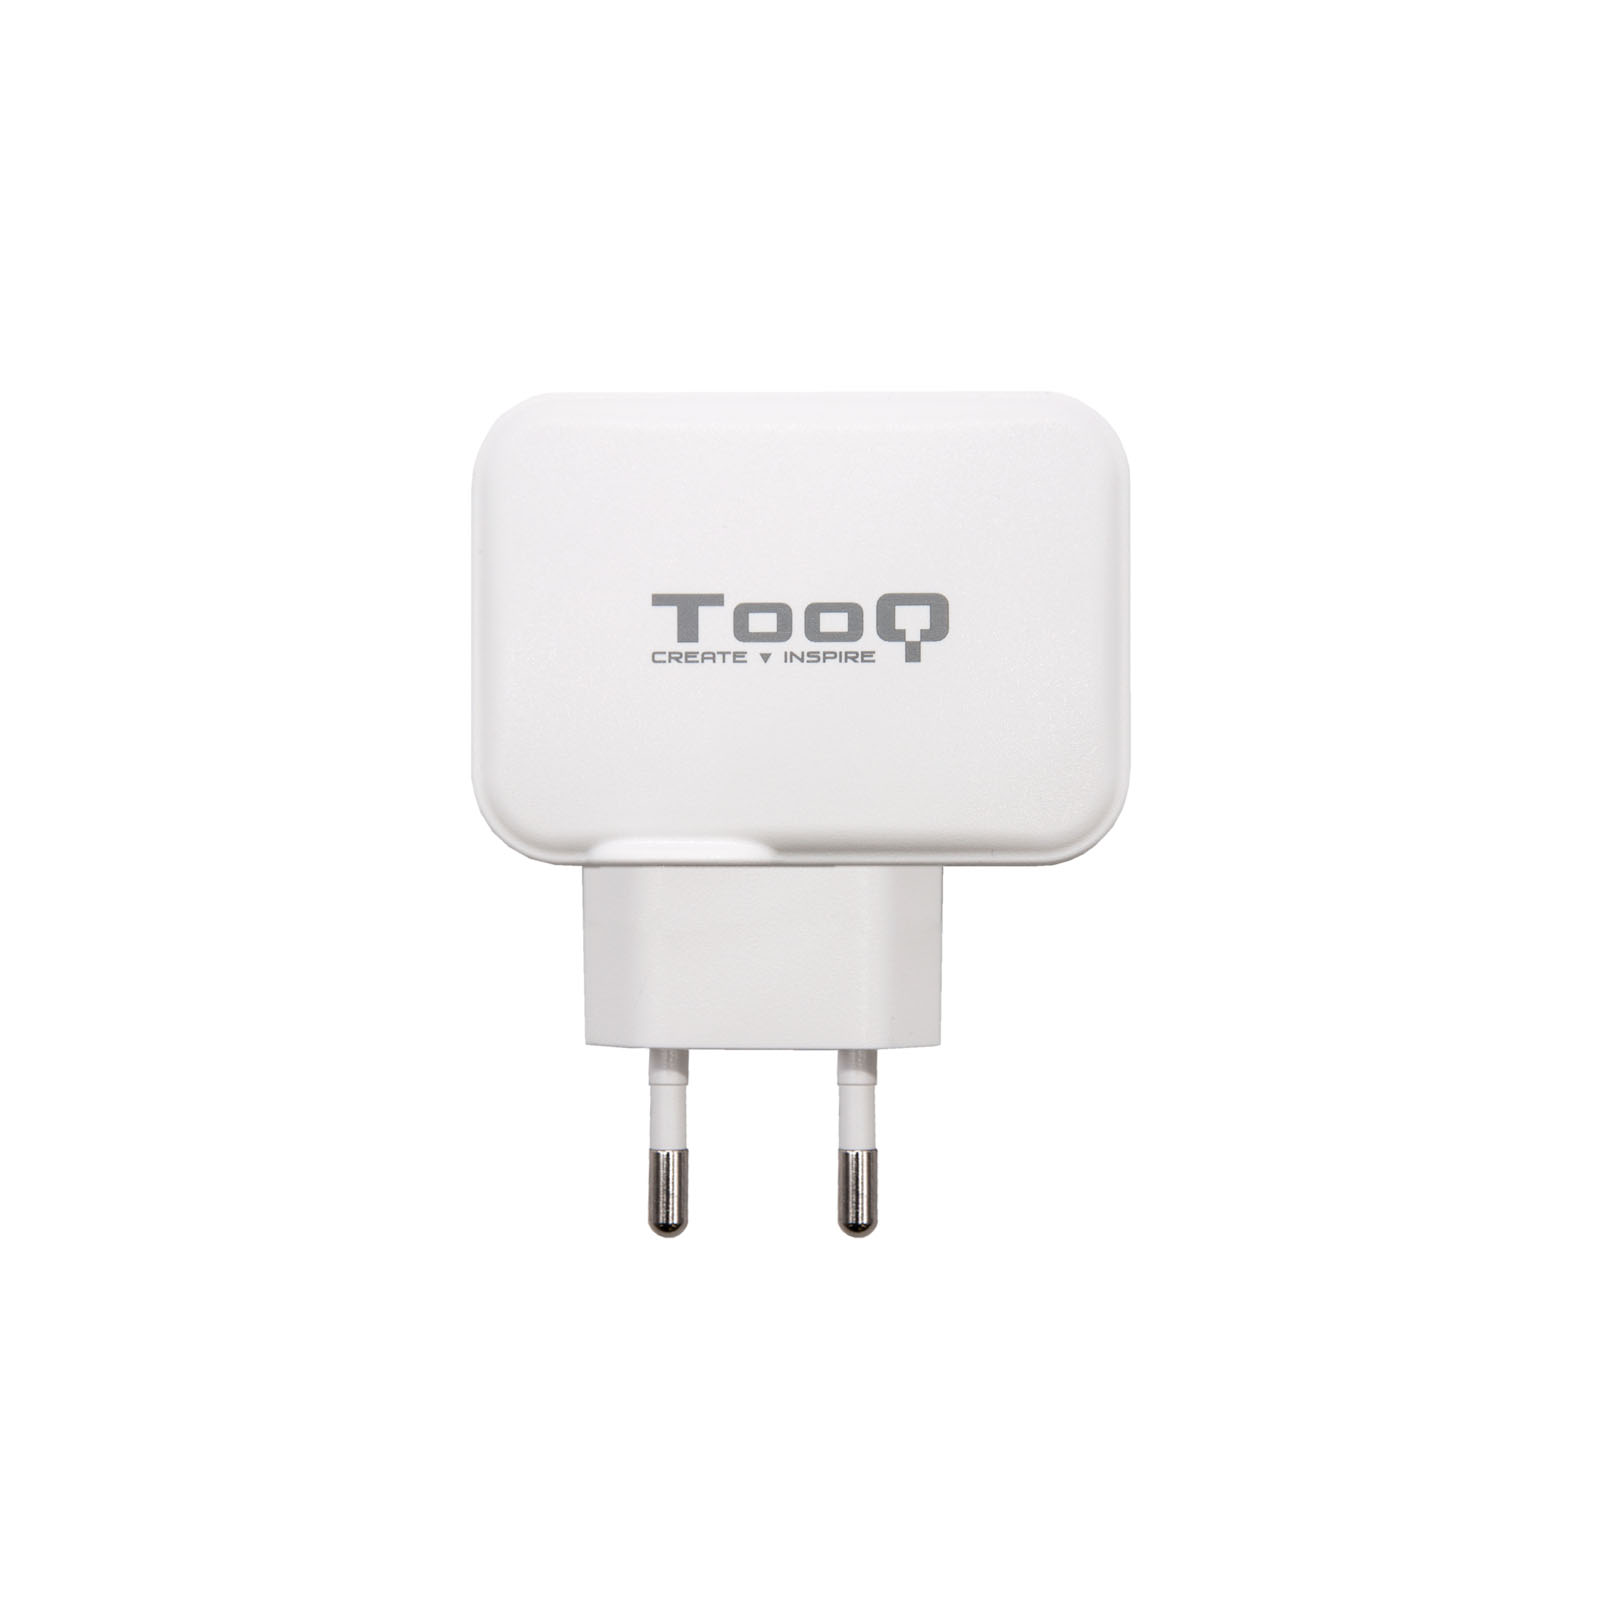 CARGADOR PARED DOBLE PUERTO USB-C + USB A 27W BLANCO